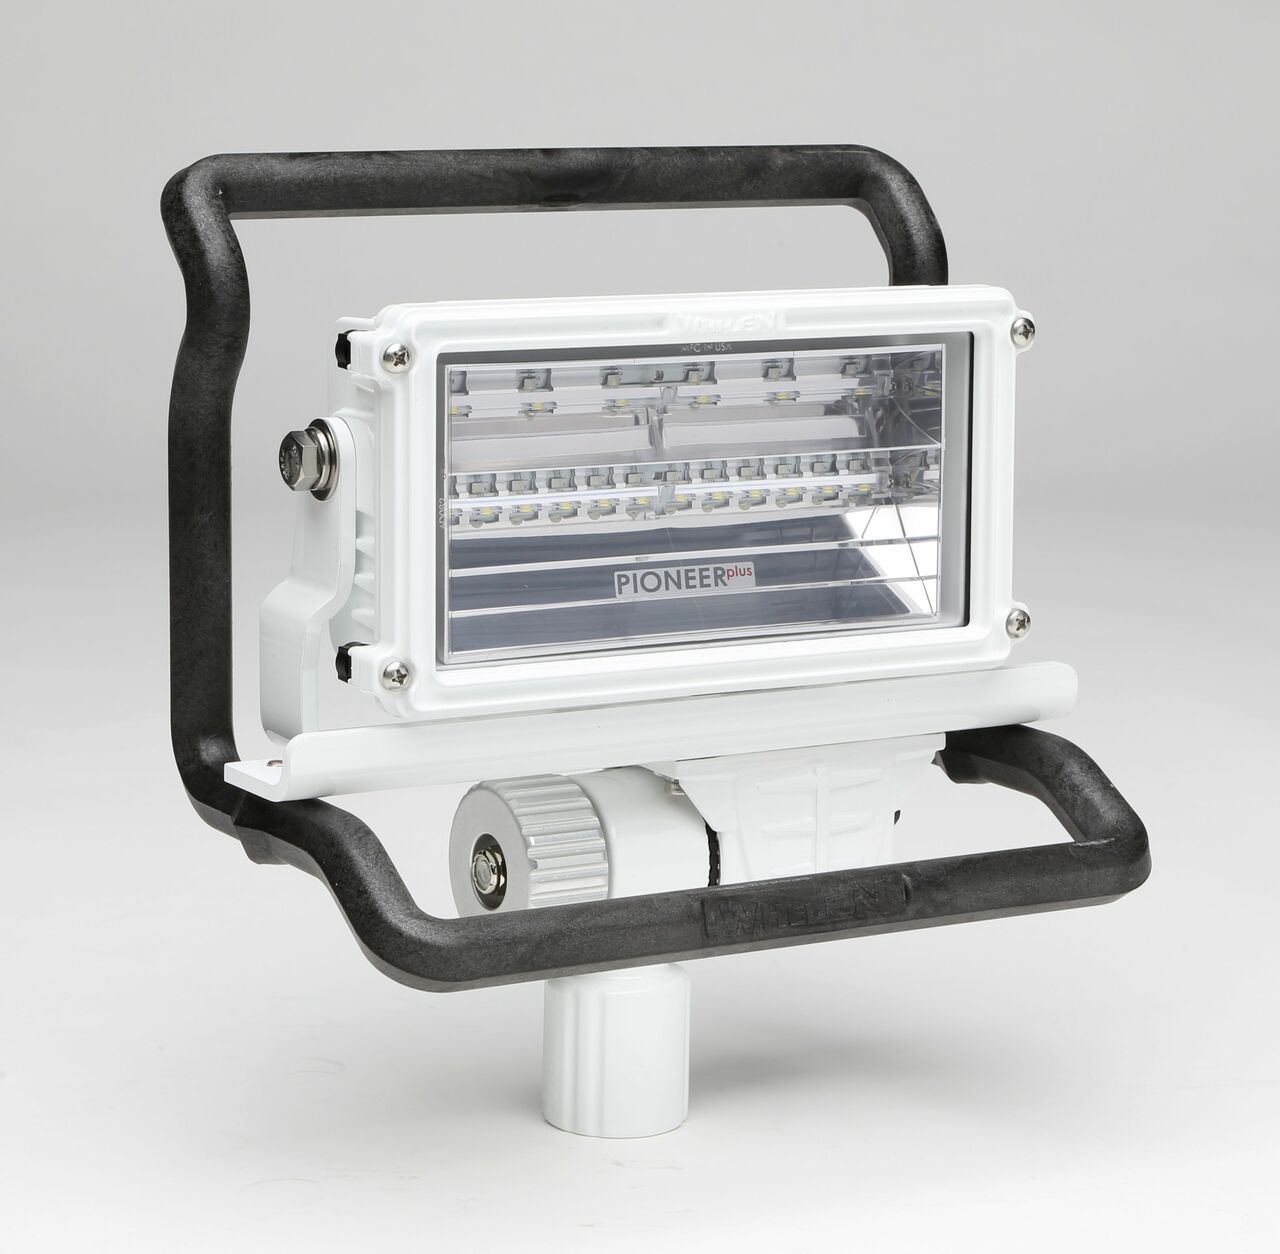 Pioneer And Pioneer Plus Series, Includes Handle And Pole/Pedestal Mount Adapter